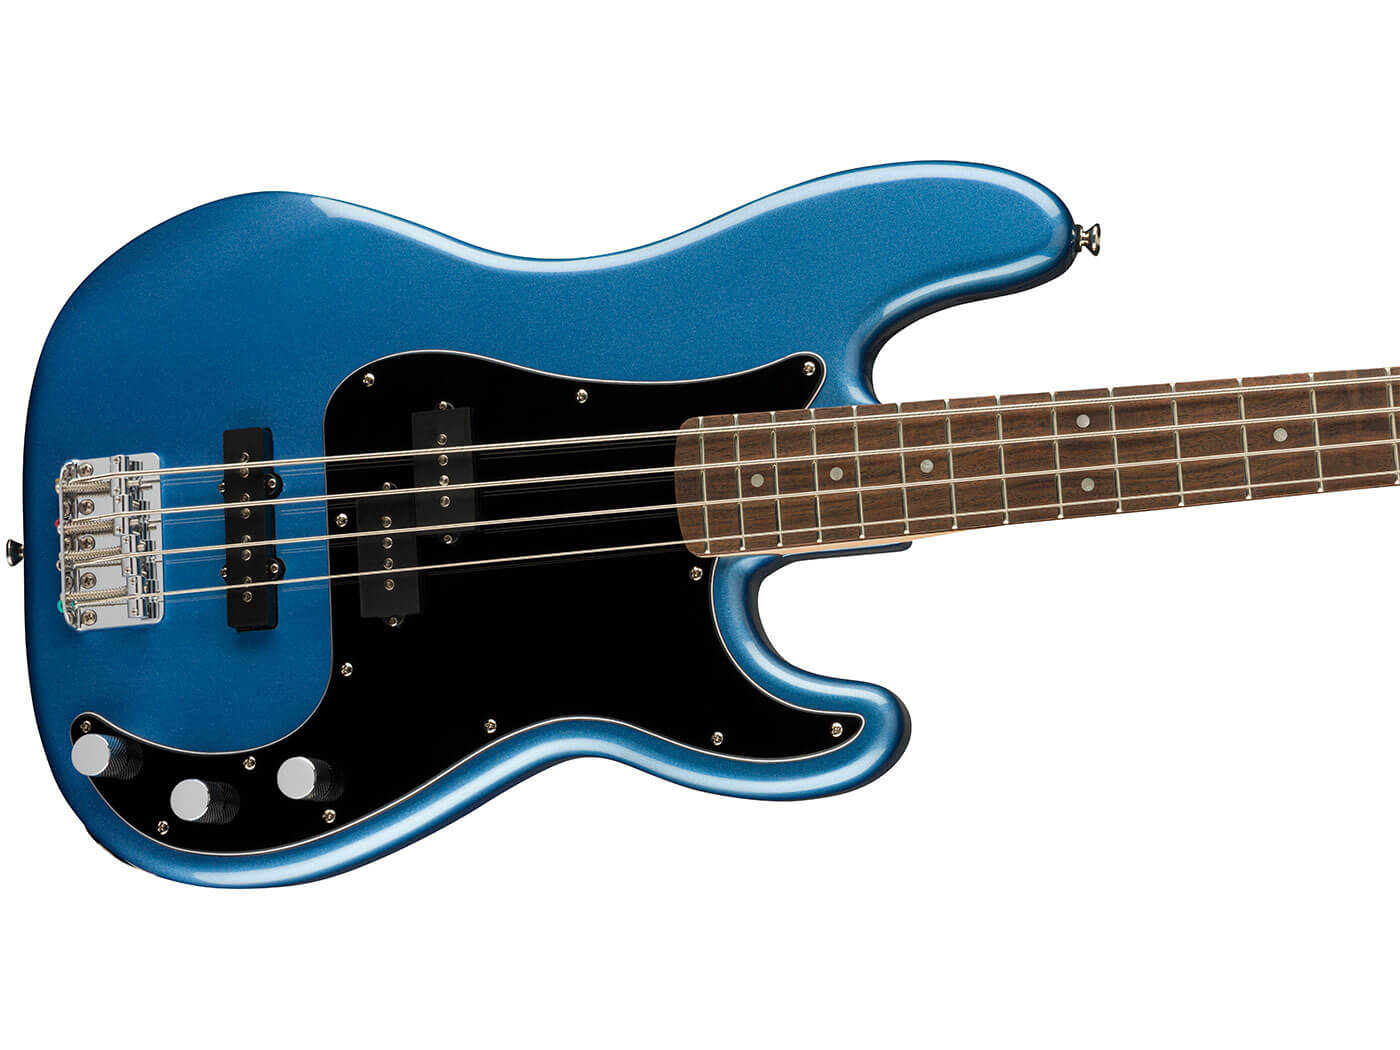 The Affinity P Bass